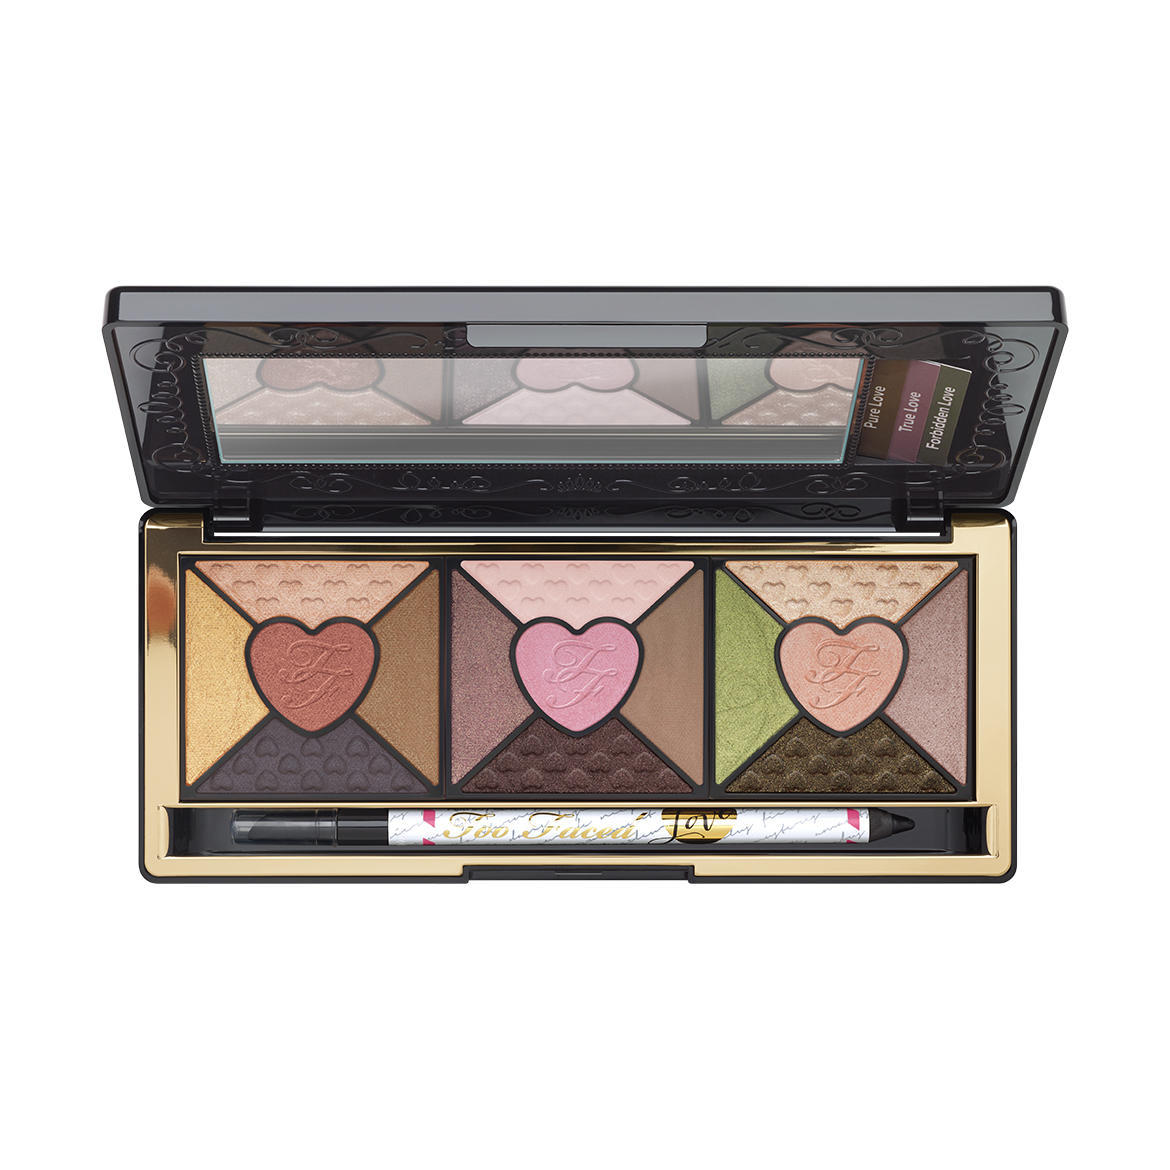 Too Faced Love Passionately Pretty Eyeshadow Palette (Missing Eyeliner)